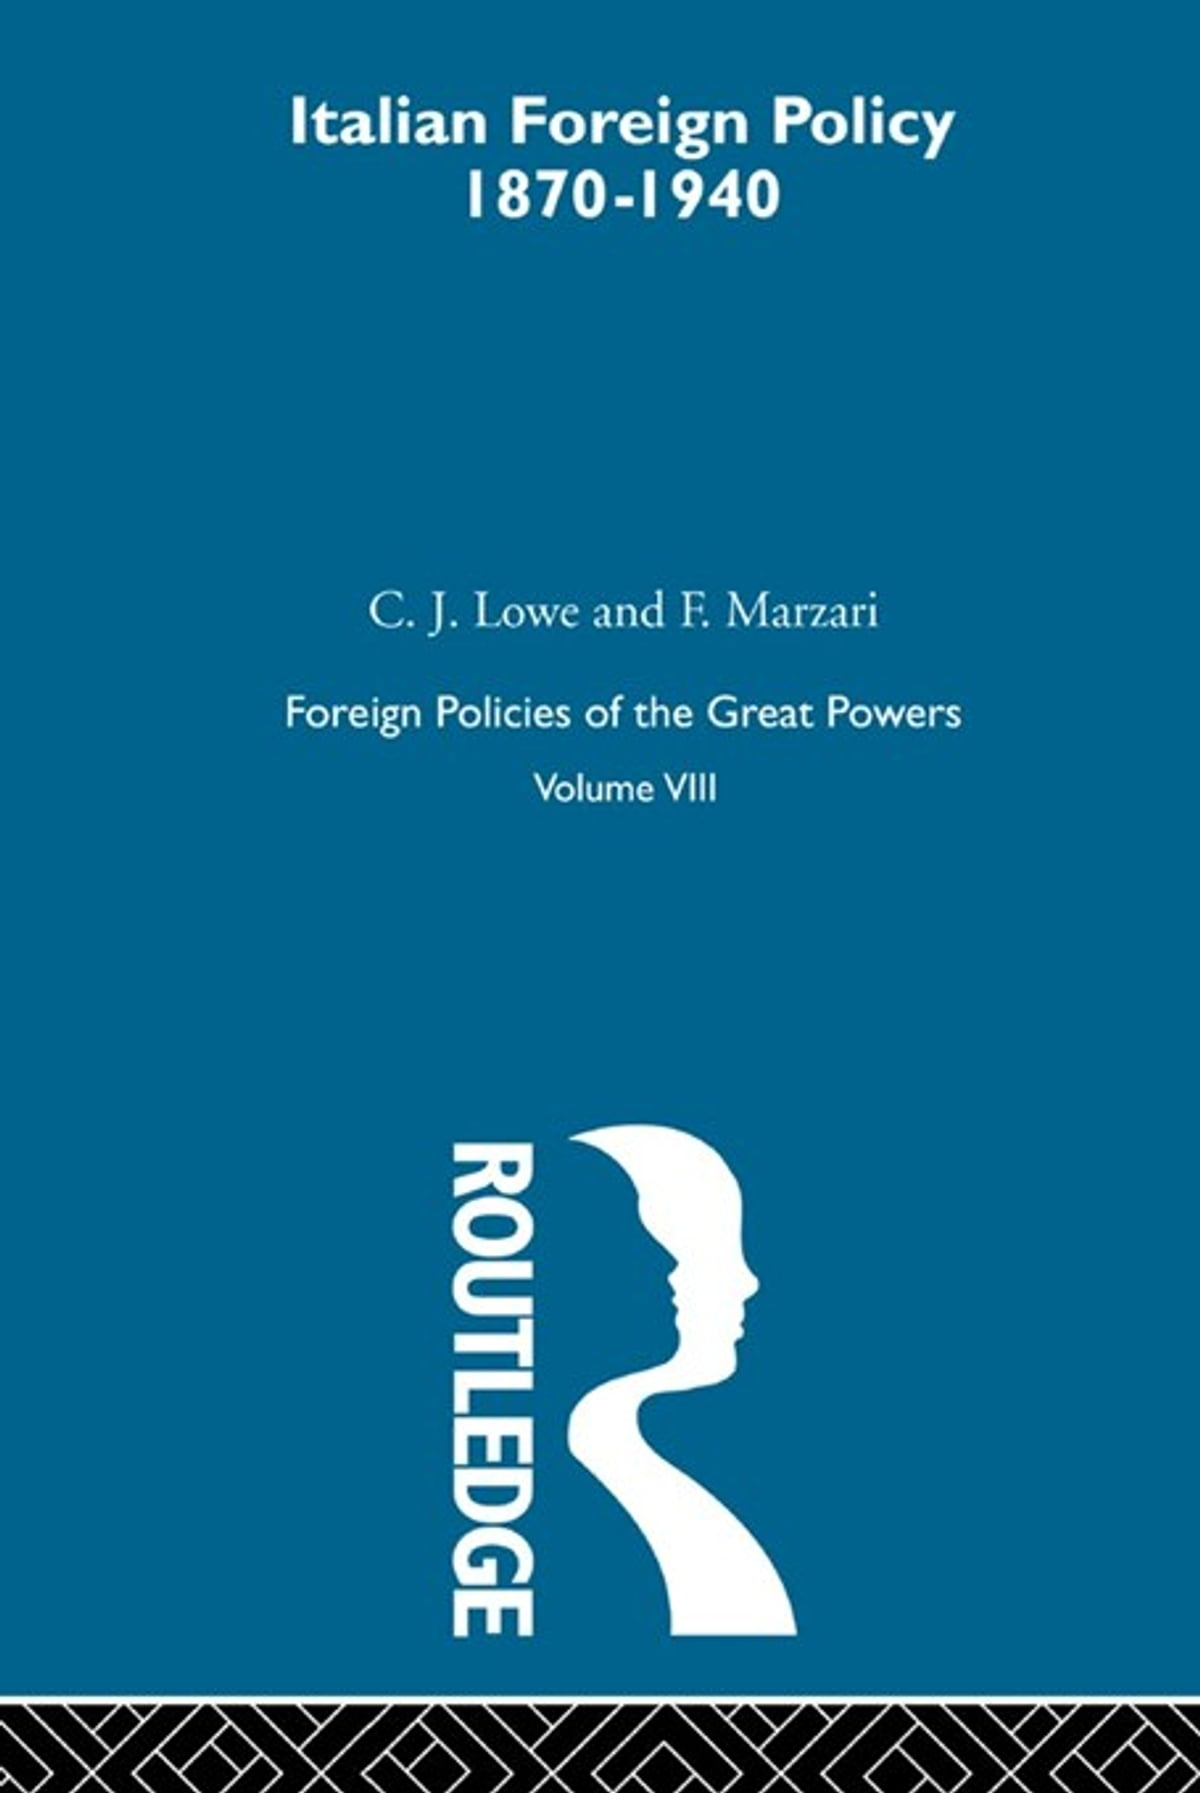 Ital Foreign Pol 1870-1940 V8 eBook by Lowe & Marzari ...